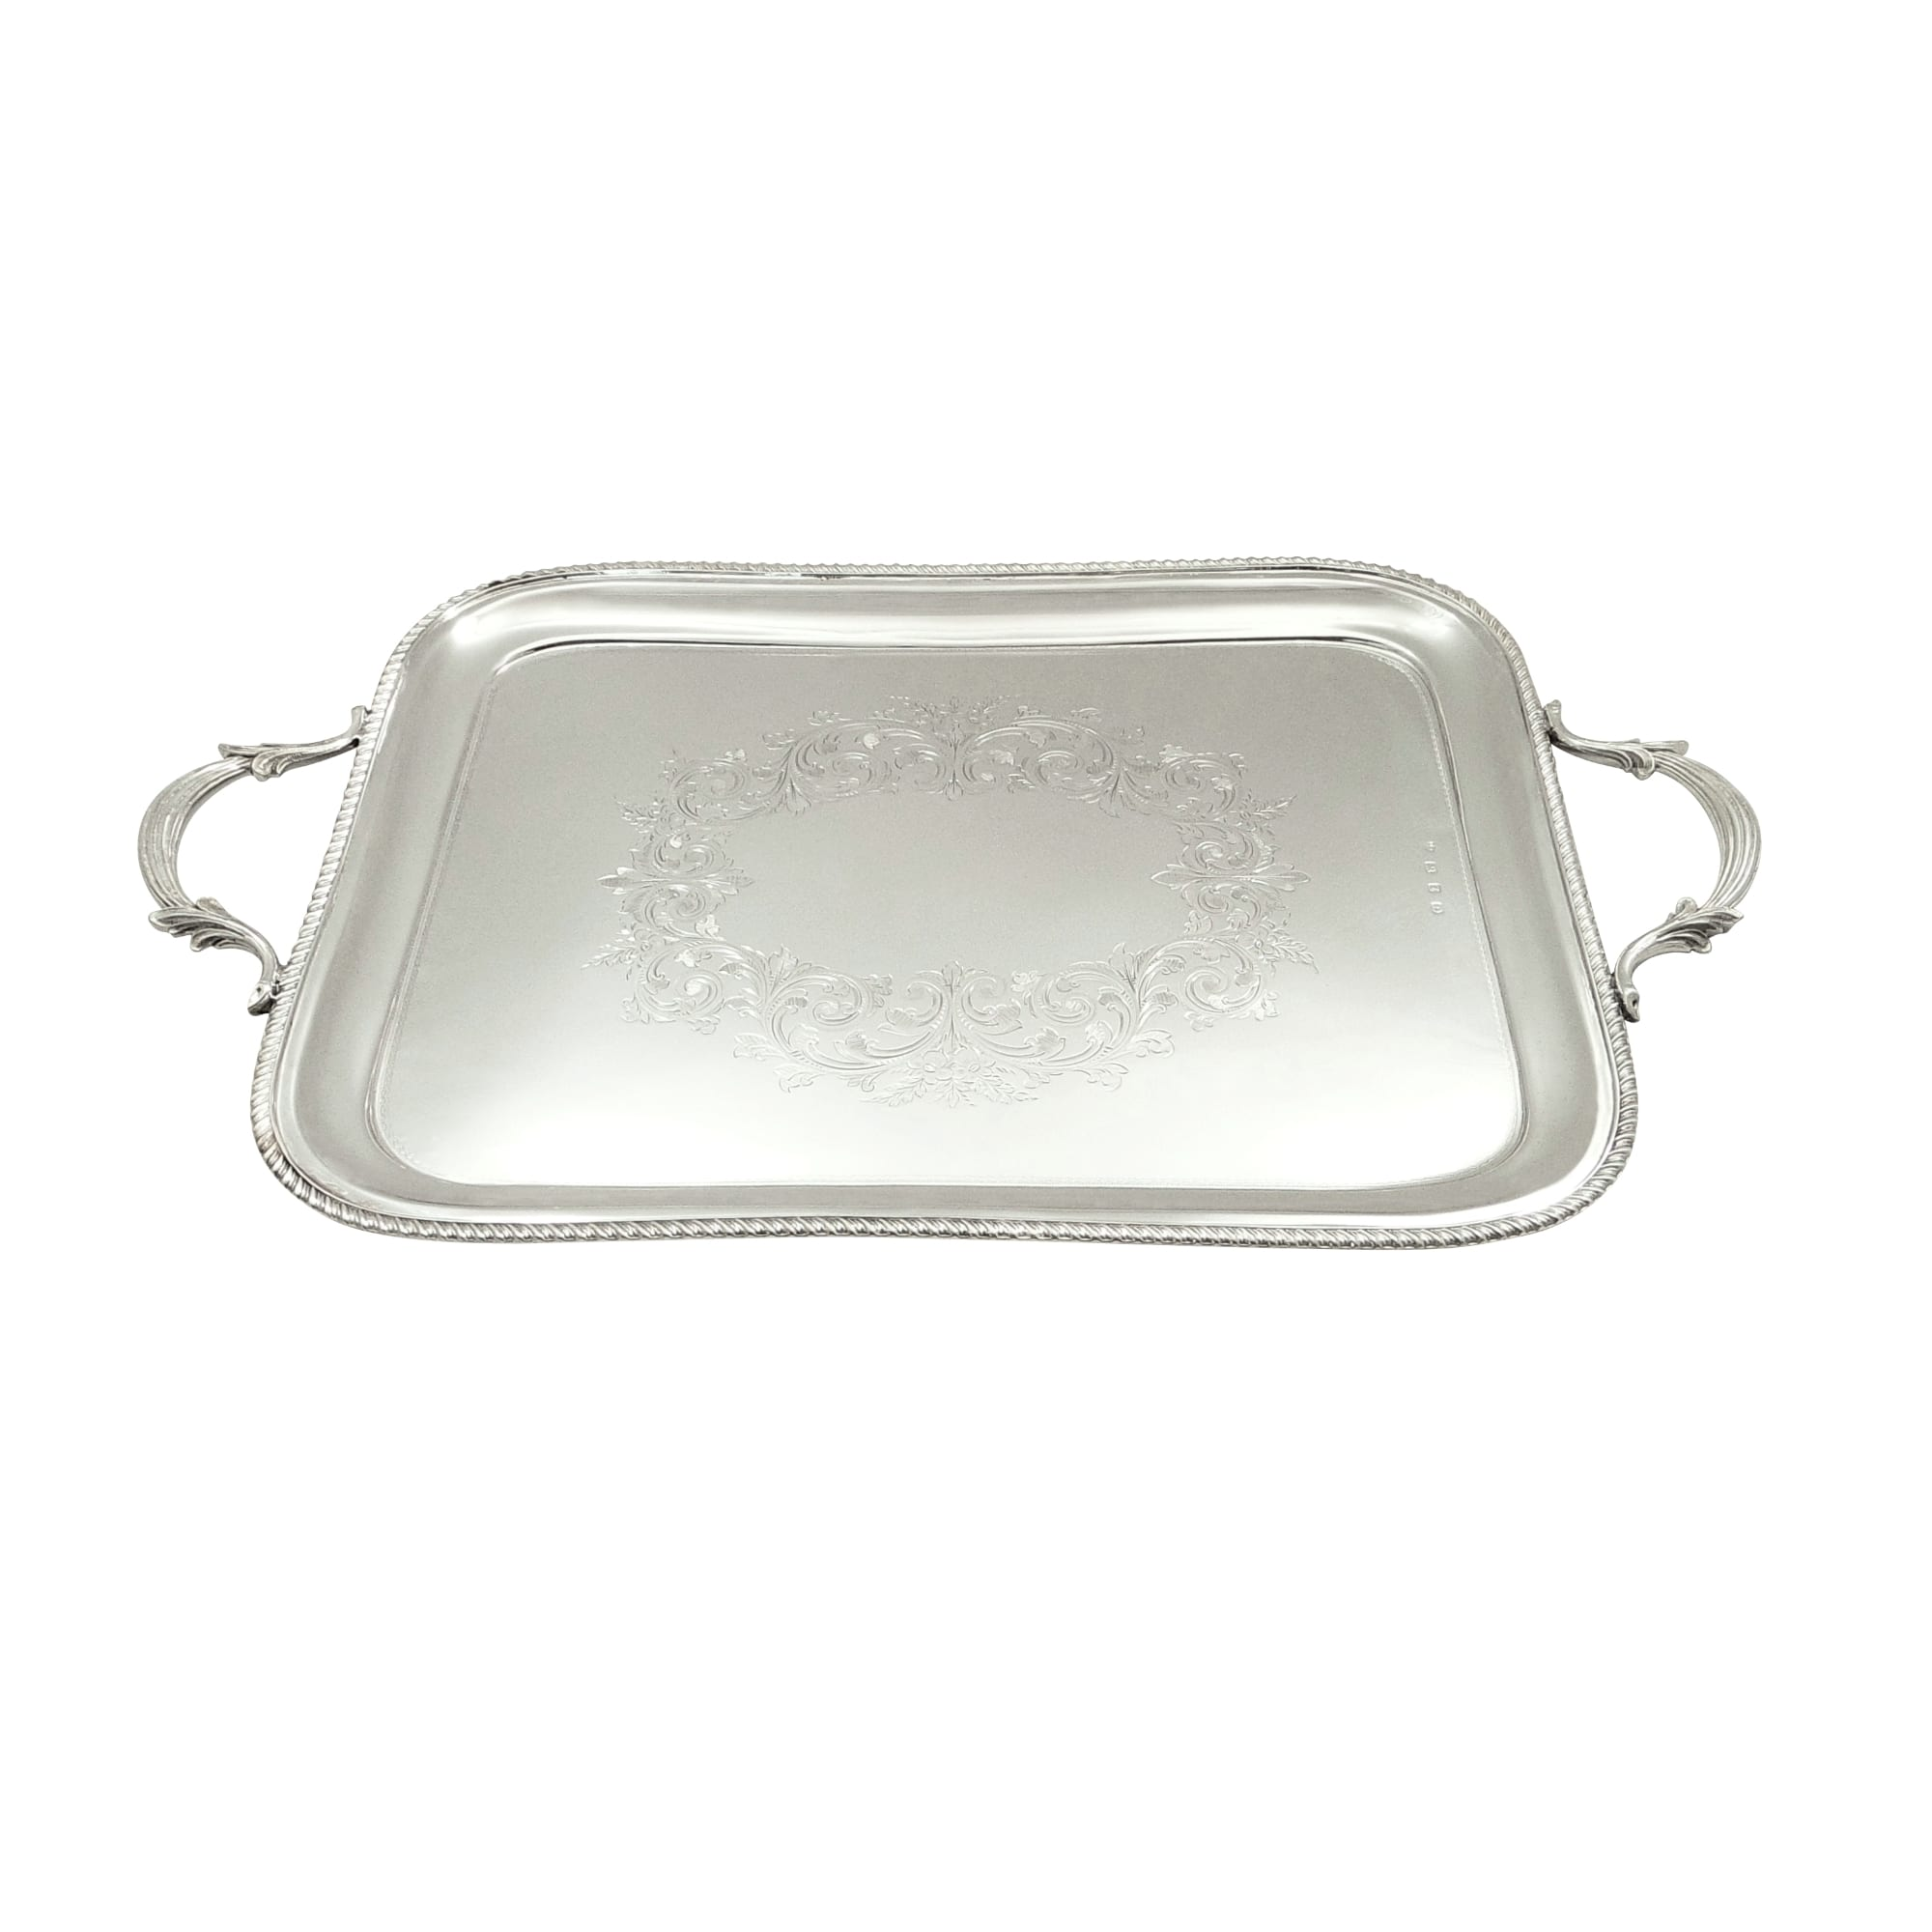 Antique Victorian Sterling Silver 16″ x 12″ Tray 1899